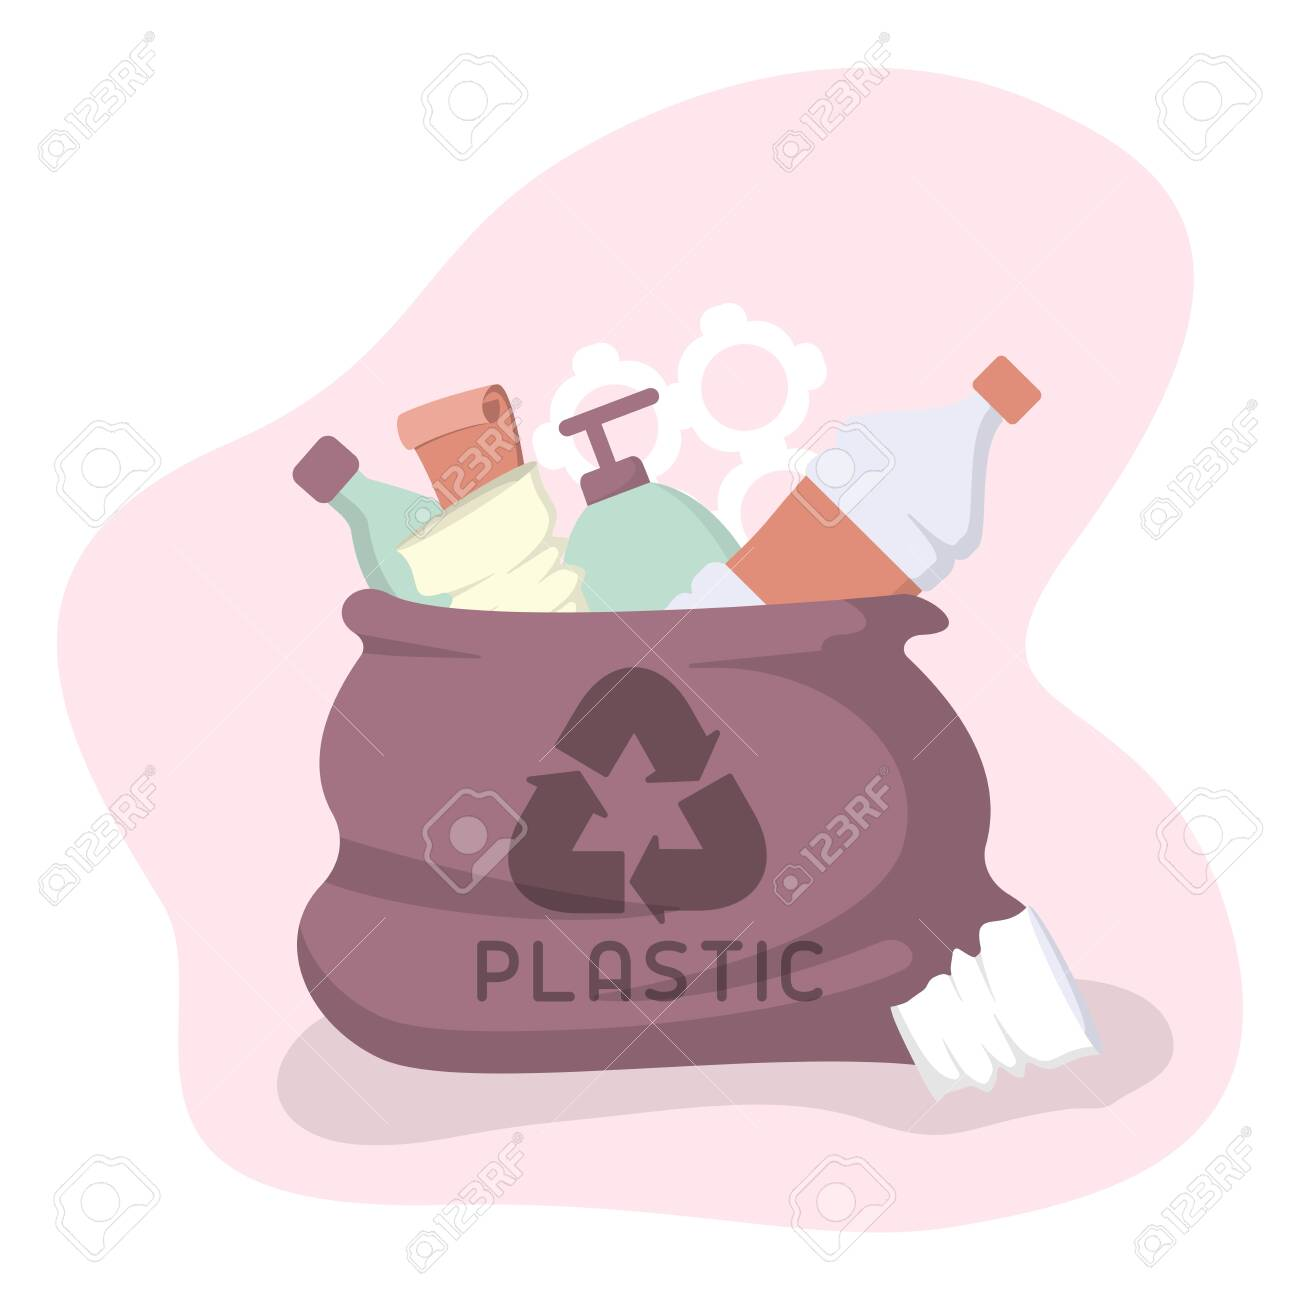 Bag with plastic trash. Flat style vector illustration - 129013188